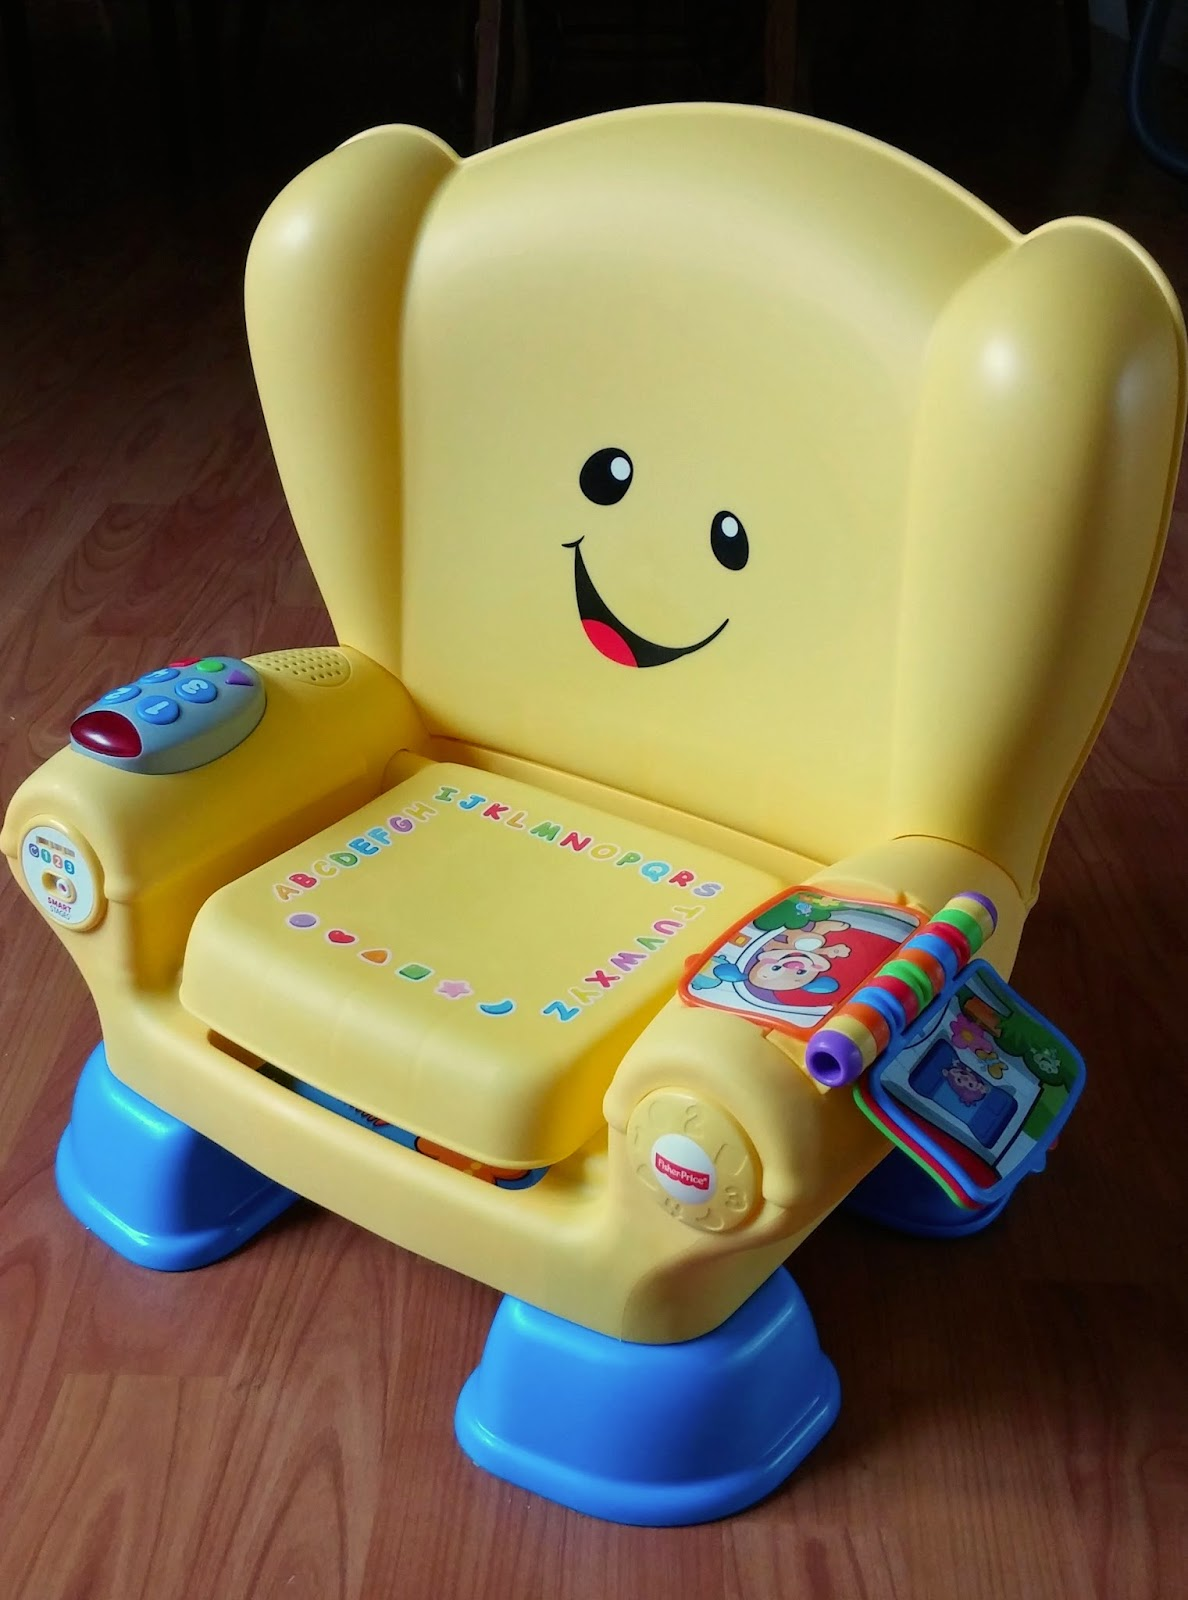 Introducing The New Fisher Price Laugh Learn Smart